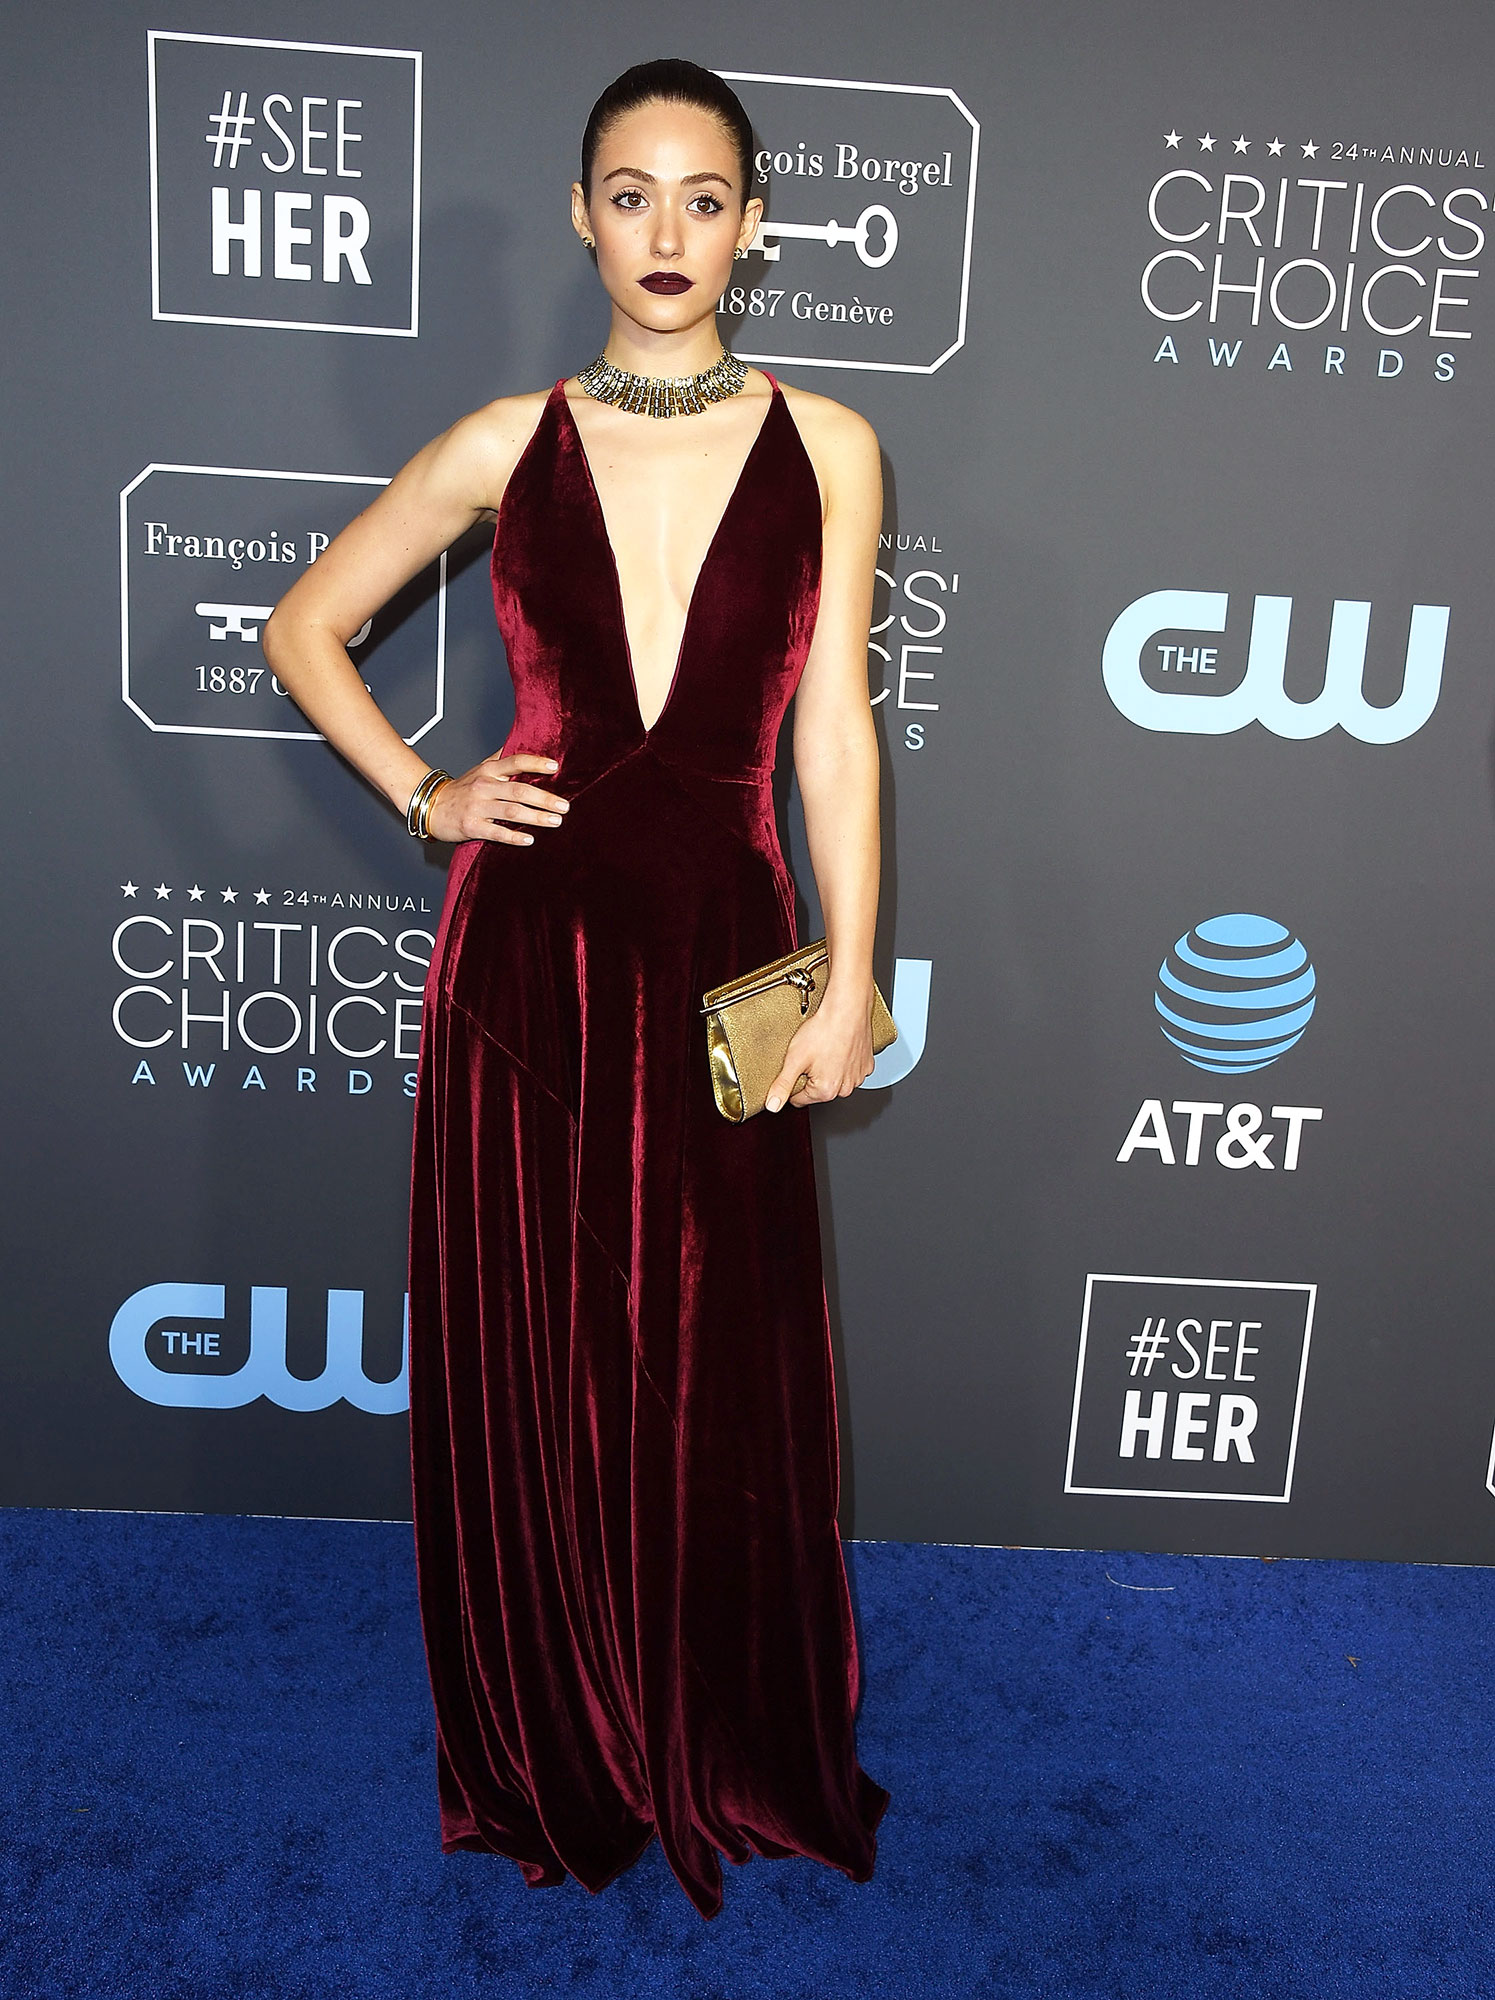 Stylish Burgundy Emmy Rossum - In a velvet Ralph Lauren Collection on Jan. 13.